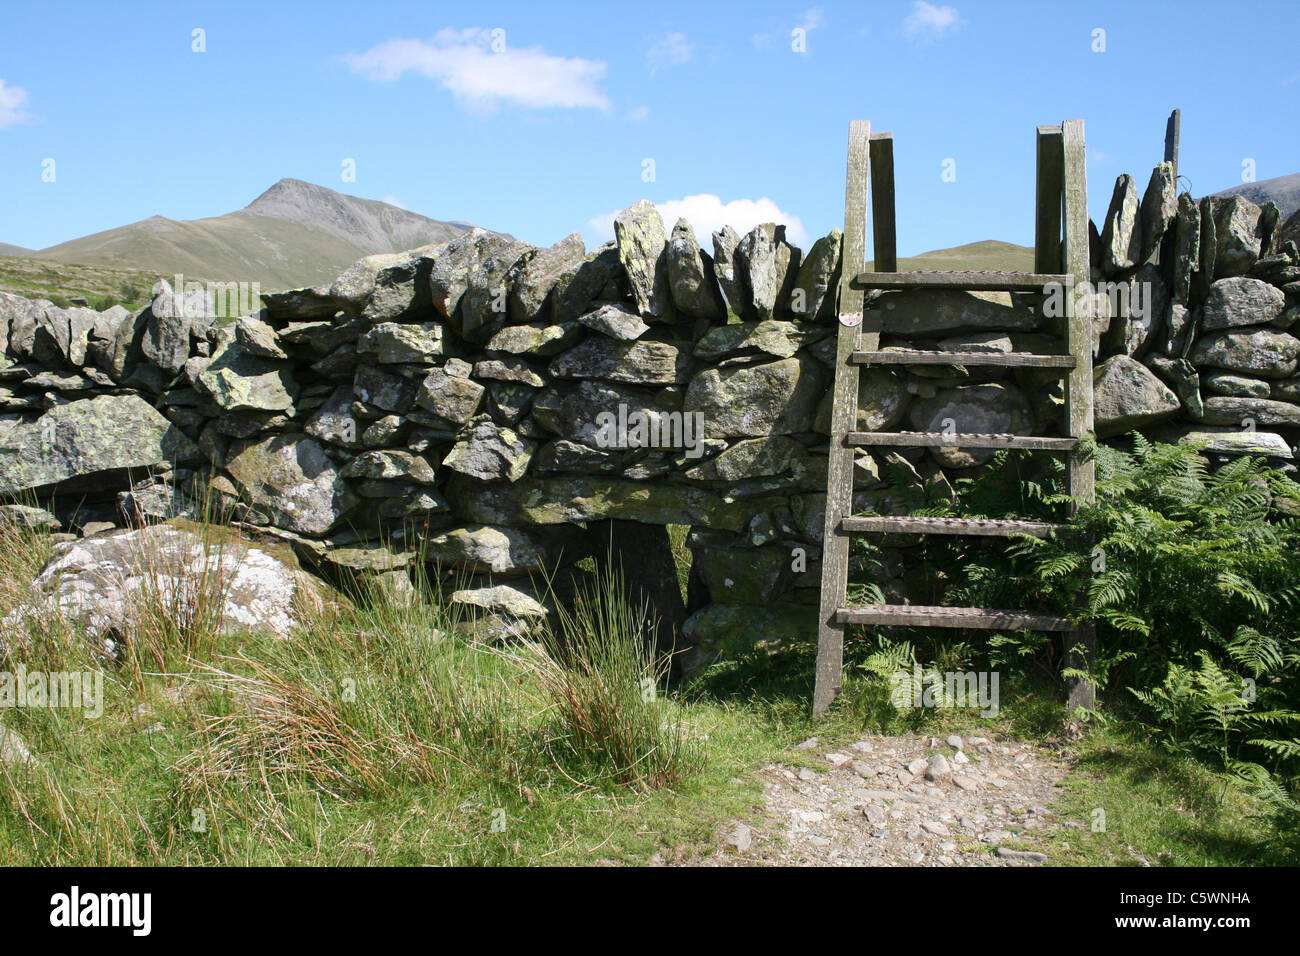 A Wooden Stile Crossing A Traditional Drystone Wall In Snowdonia, Wales - Stock Image